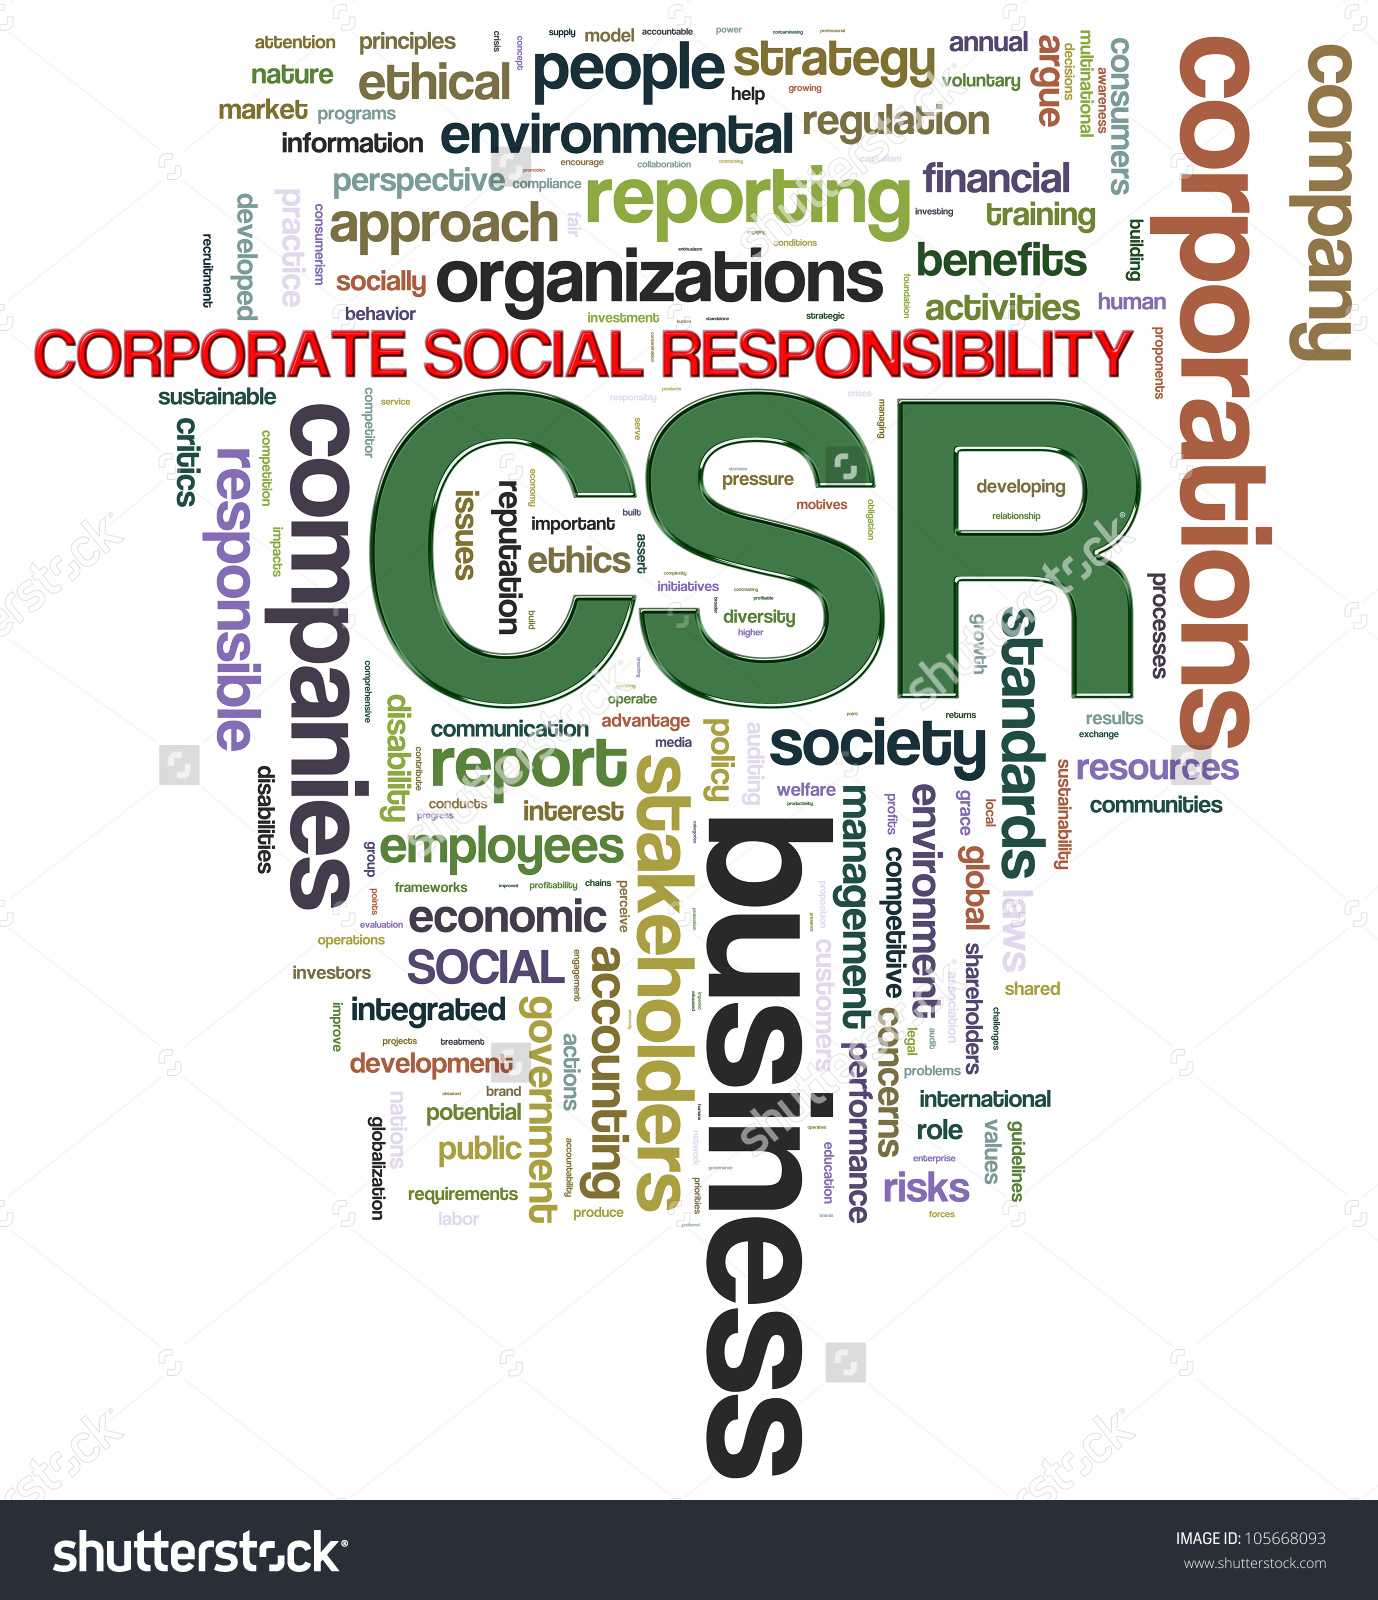 ethics and social responsibilities of business essay The business ethics and social responsibility is one of the most popular assignments among students' documents if you are stuck with writing or missing ideas, scroll down and find.